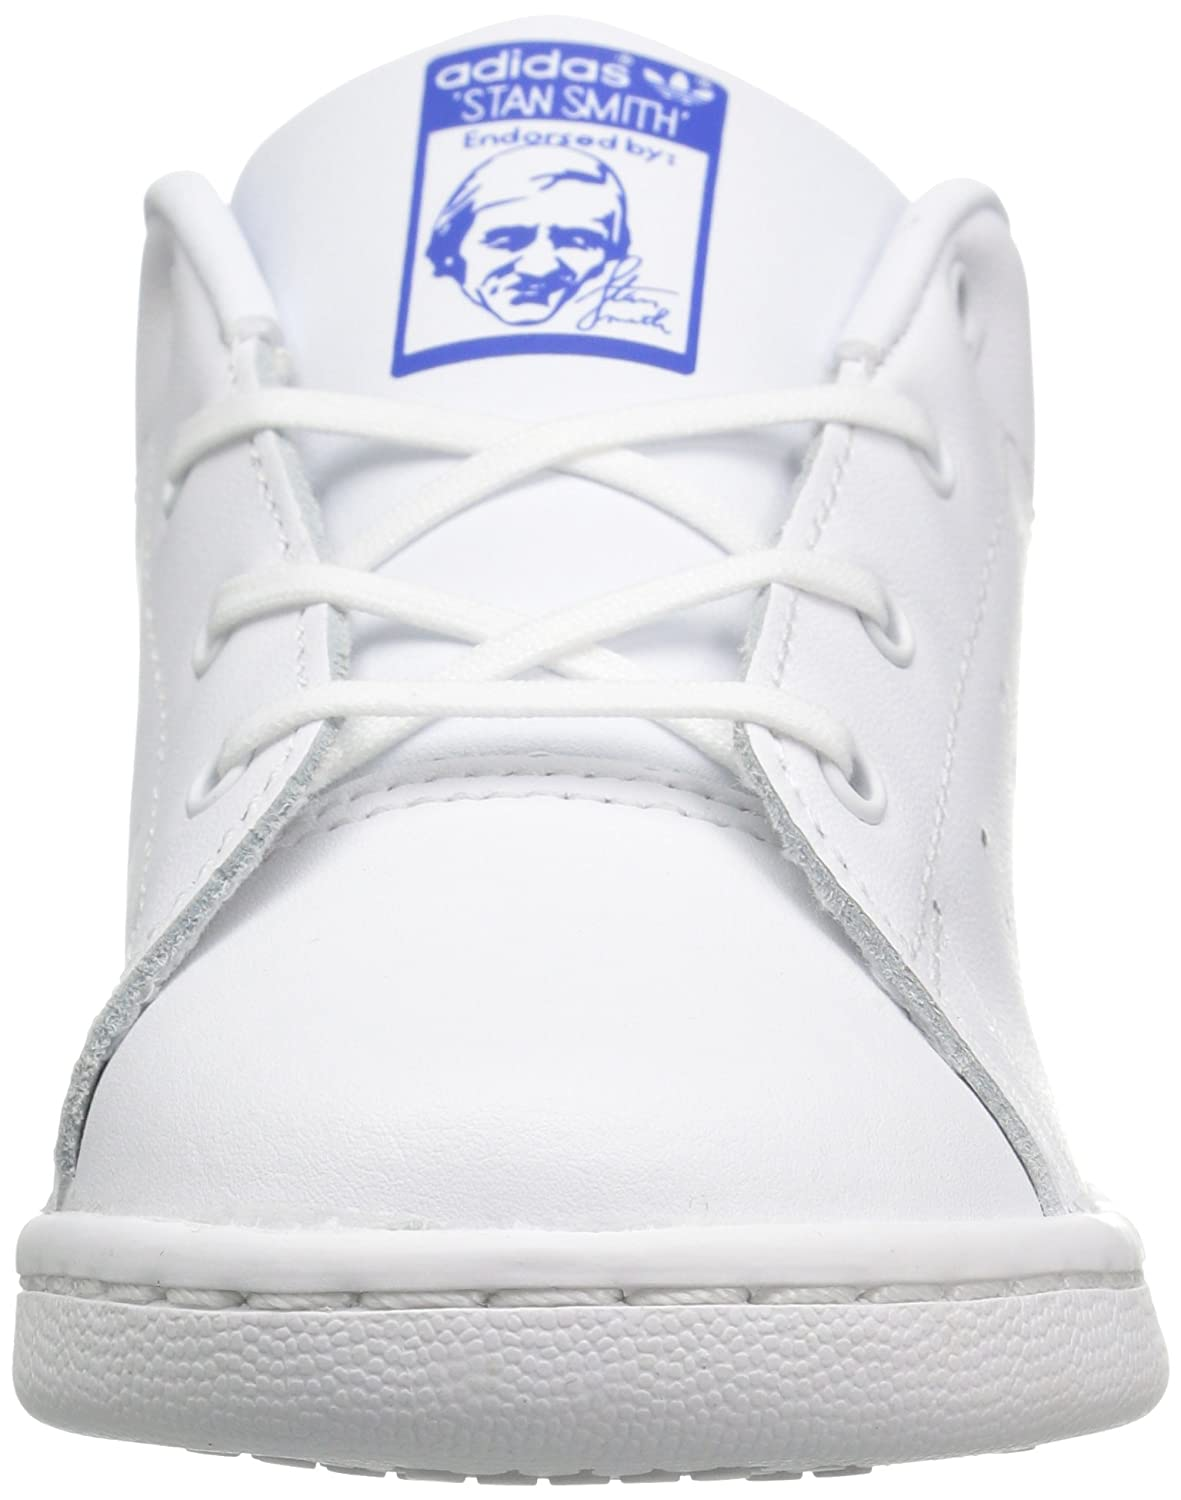 Adidas Stan Smith me b0109110s0 18985 Originals Kids zapatilla White